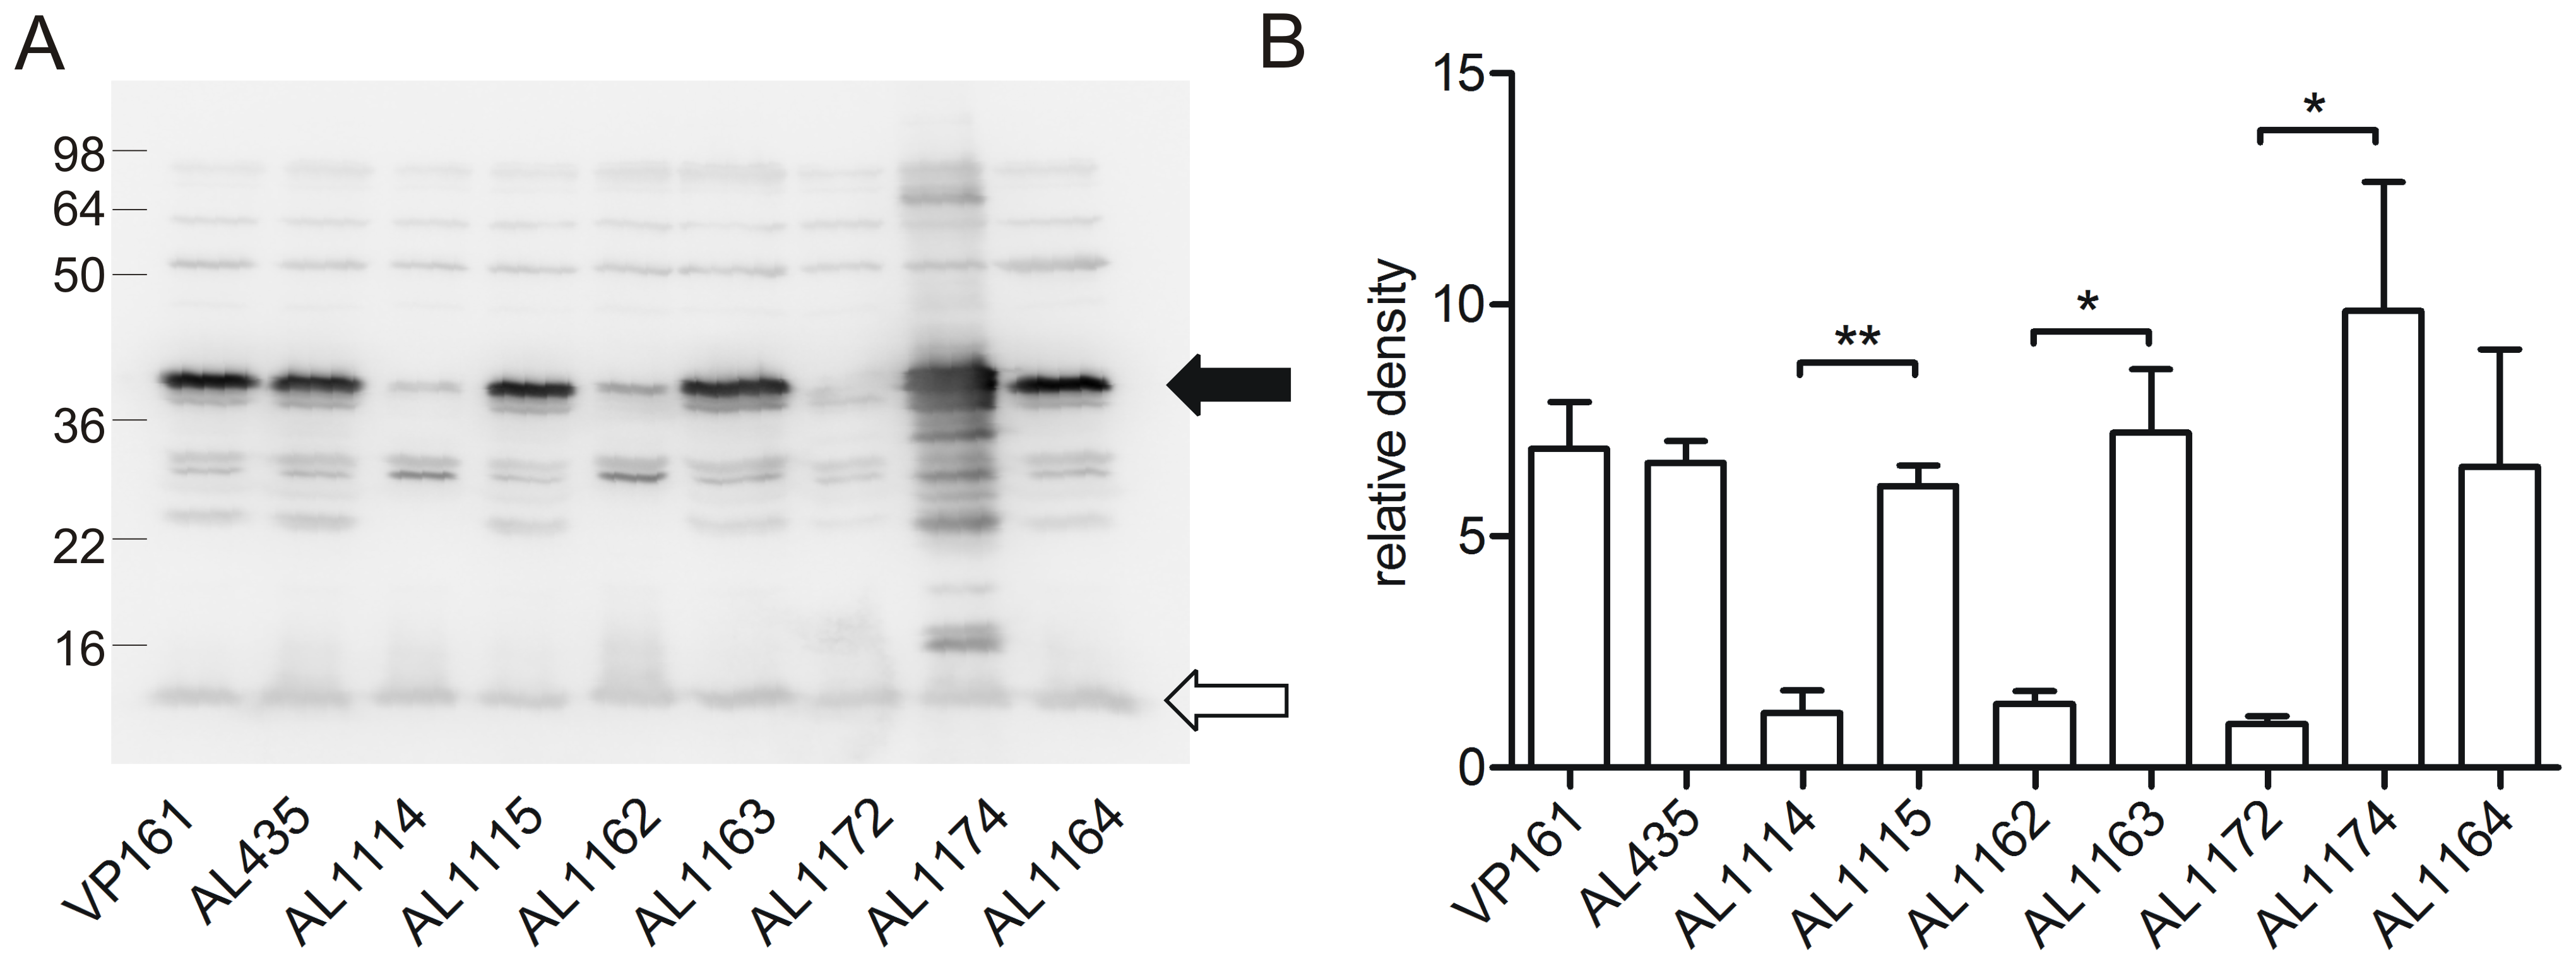 Western immunoblot and densitometry analysis of <i>P. multocida</i> PlpE expression in acapsular, capsulated and control strains.